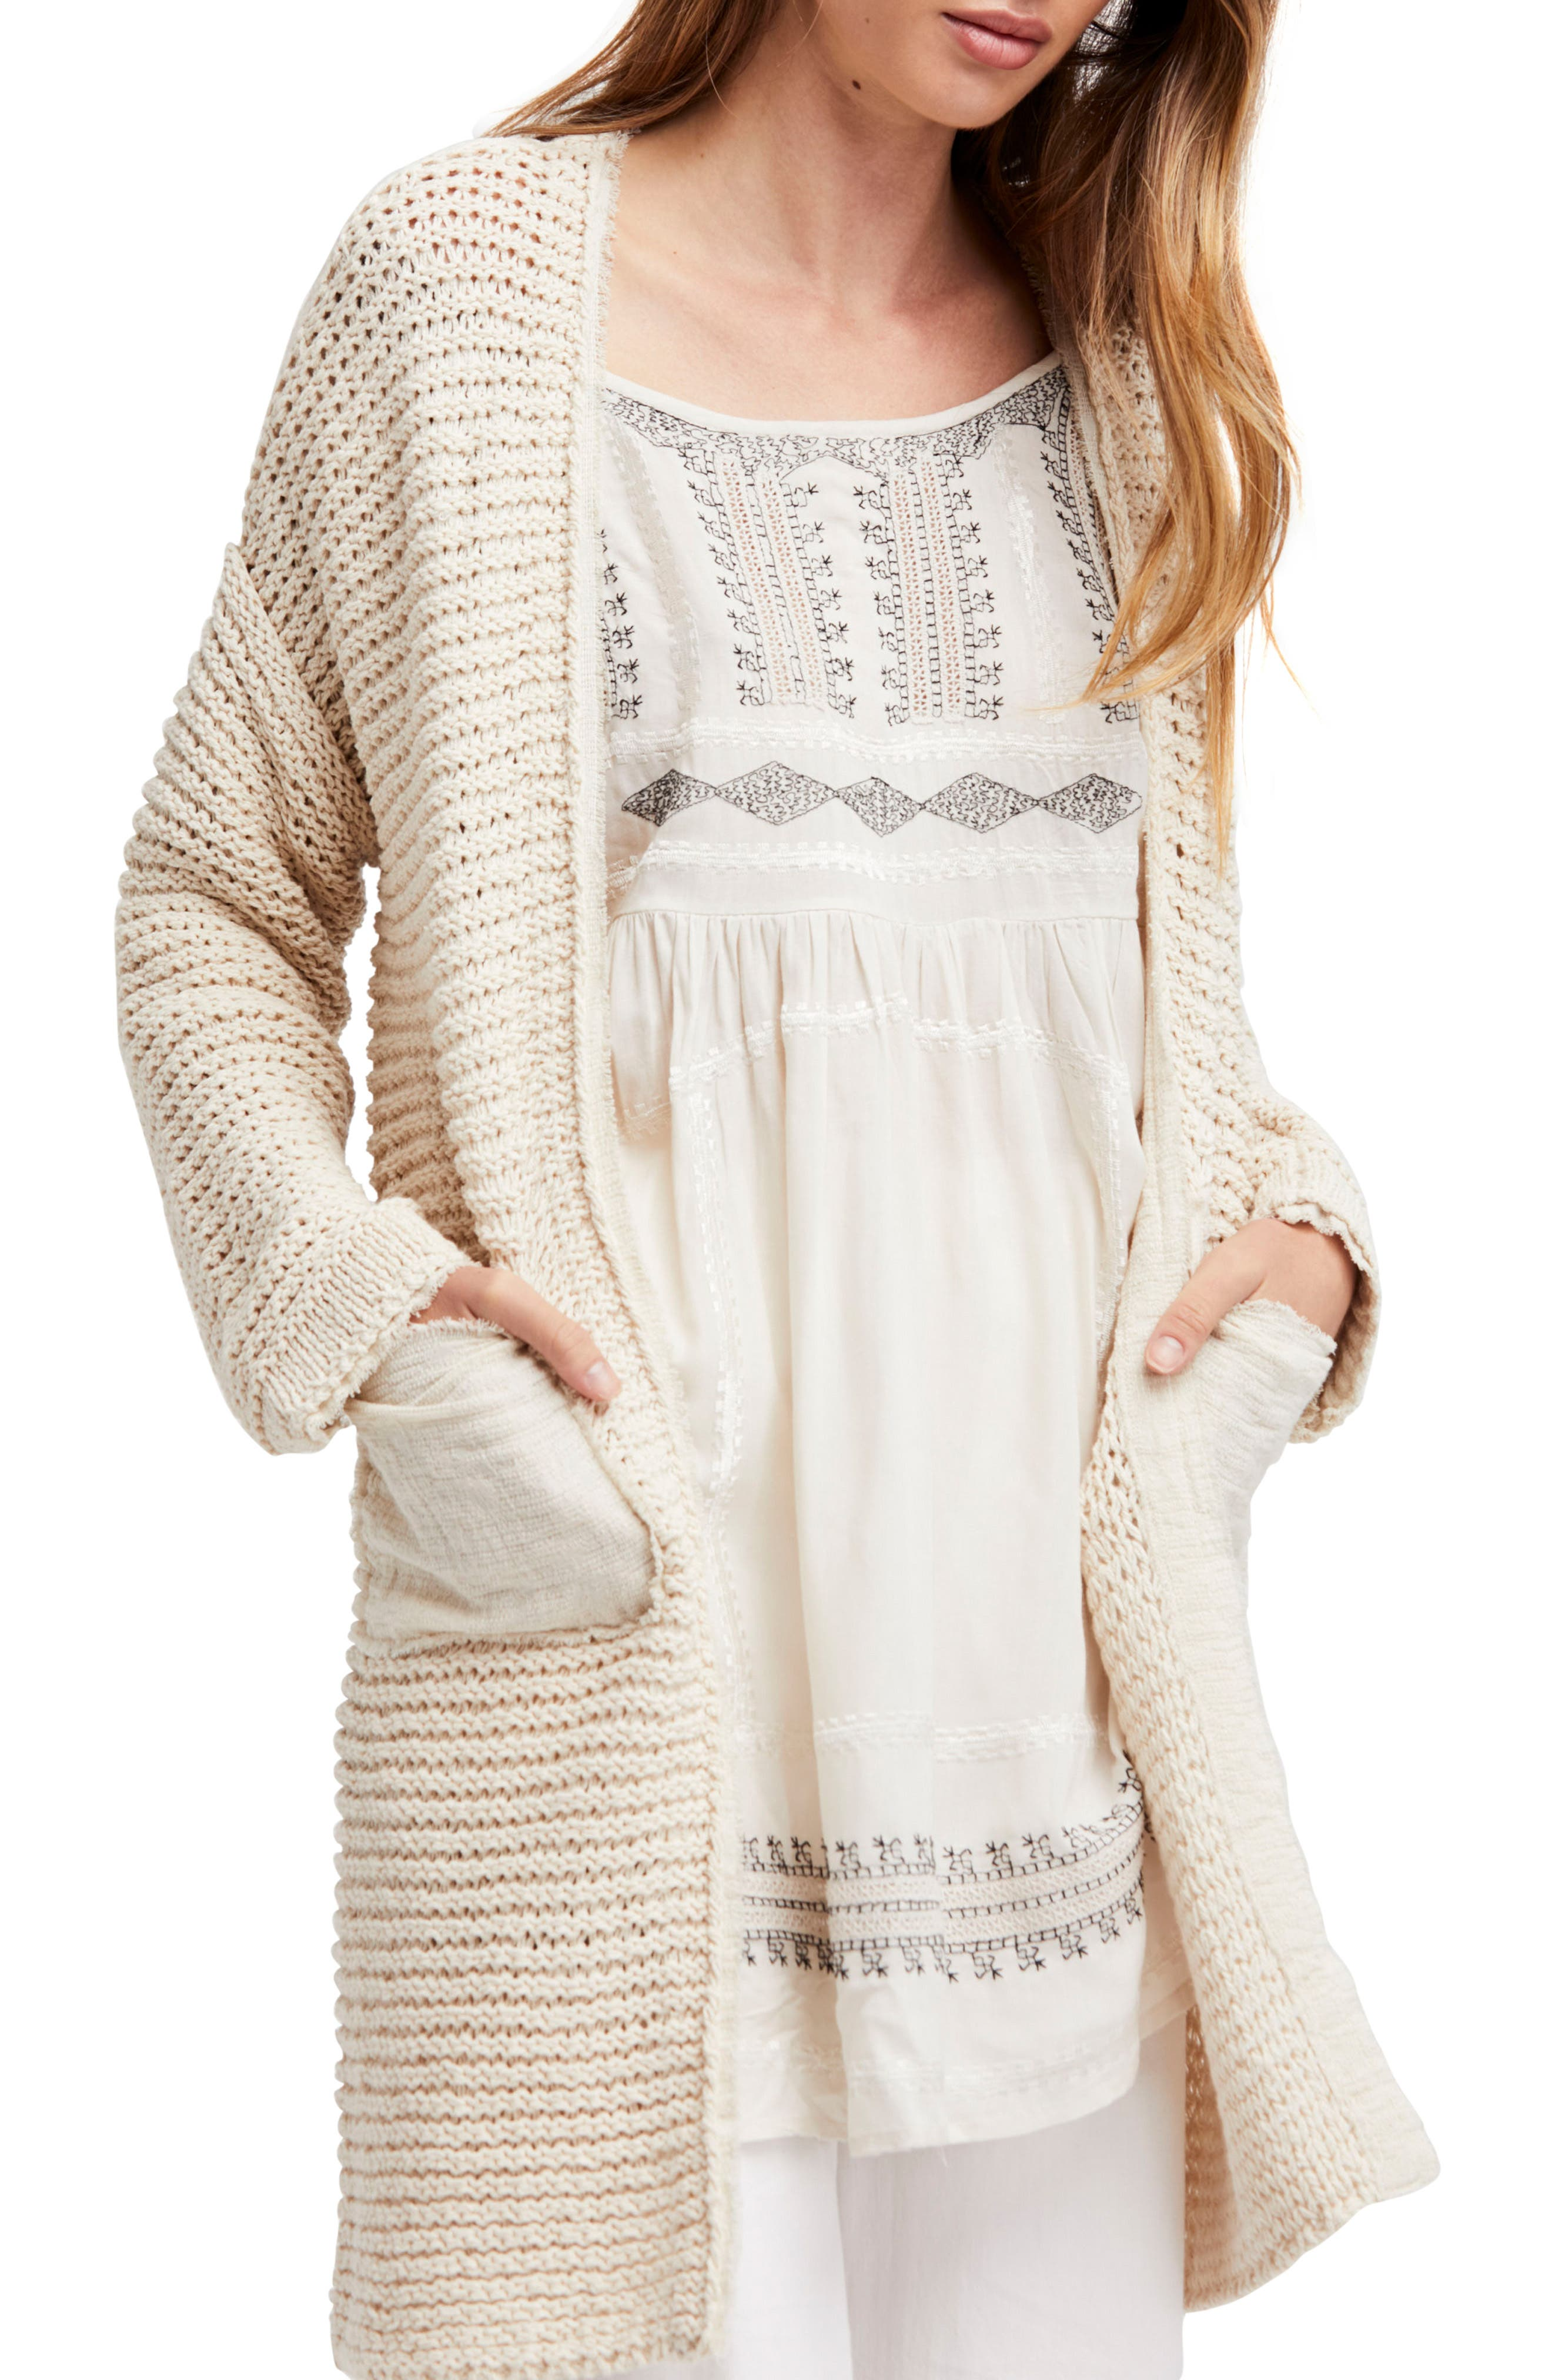 Woodstock Longline Cardigan,                             Main thumbnail 1, color,                             Ivory